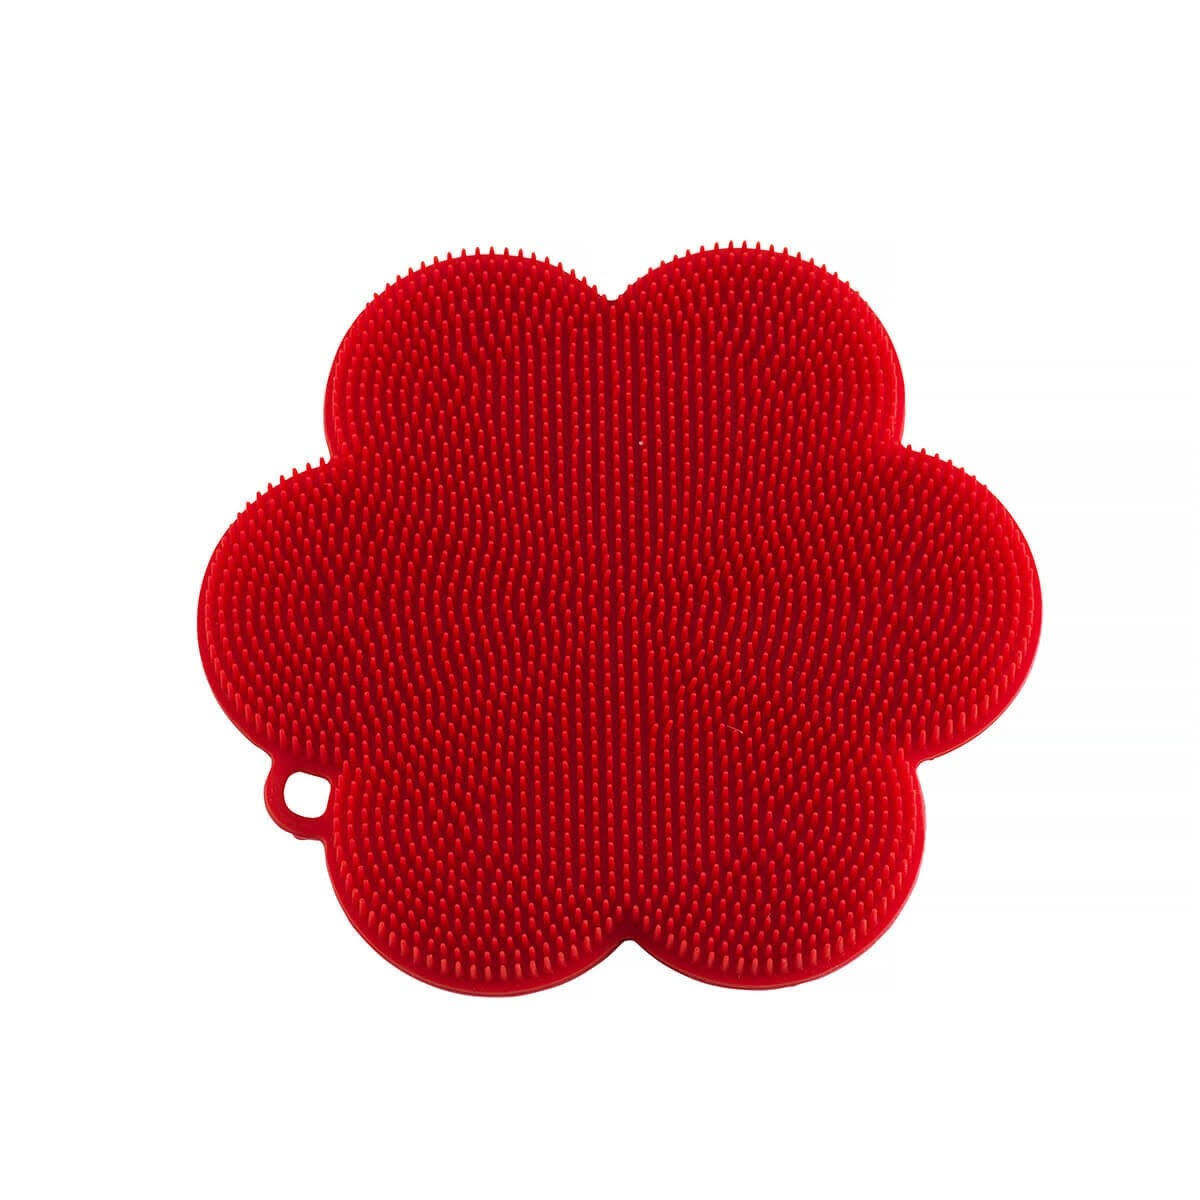 Kuhn Rikon Stay Clean Flower Silicone Scrubber, Red